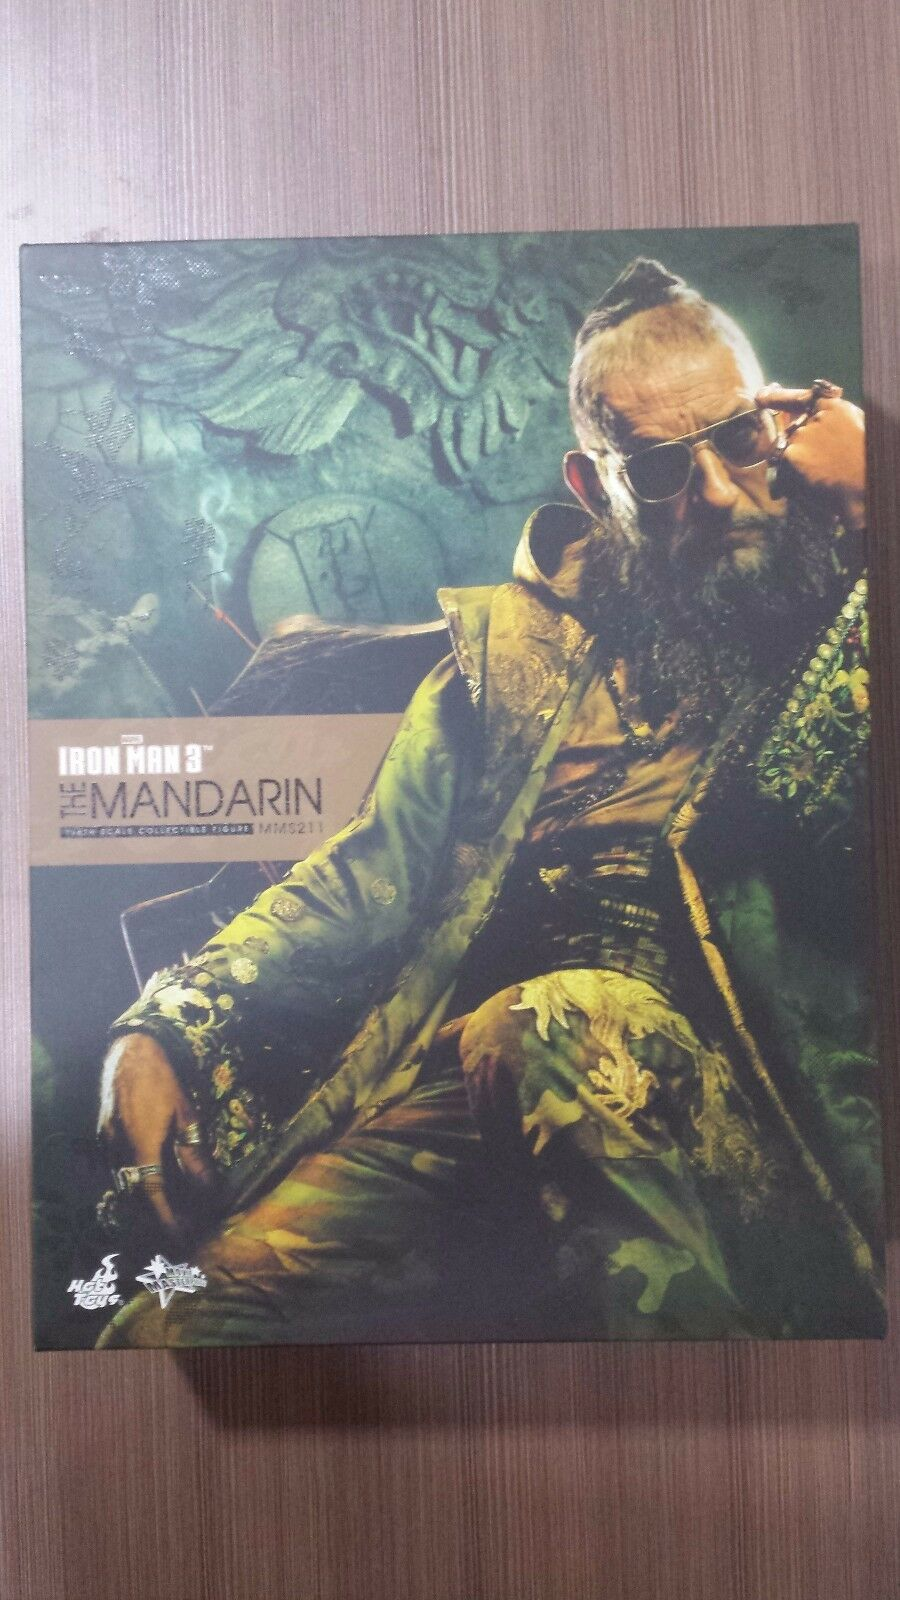 Hot Toys MMS 211 IRON MAN 3 LE MANDARIN Ben Kingsley 12 in (environ 30.48 cm) ACTION FIGURE NEW